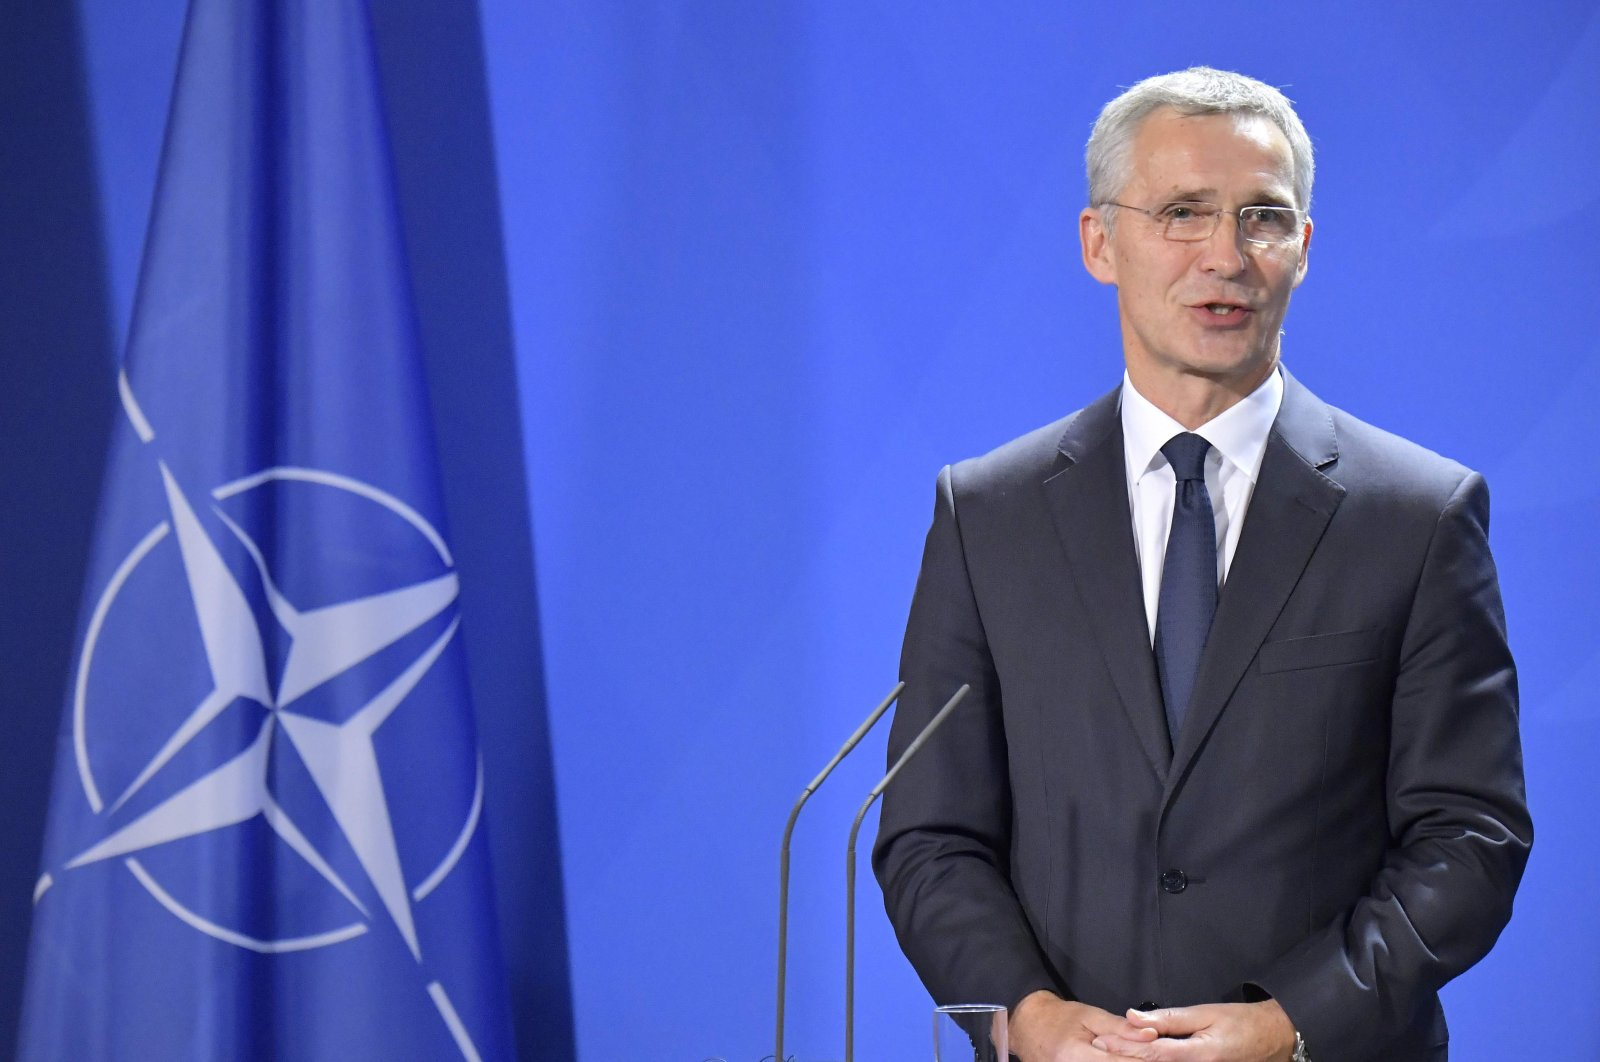 NATO Secretary-General Jens Stoltenberg addresses a joint news conference with German Chancellor Angela Merkel in Berlin, Germany, Nov. 7, 2019.  (AFP Photo)